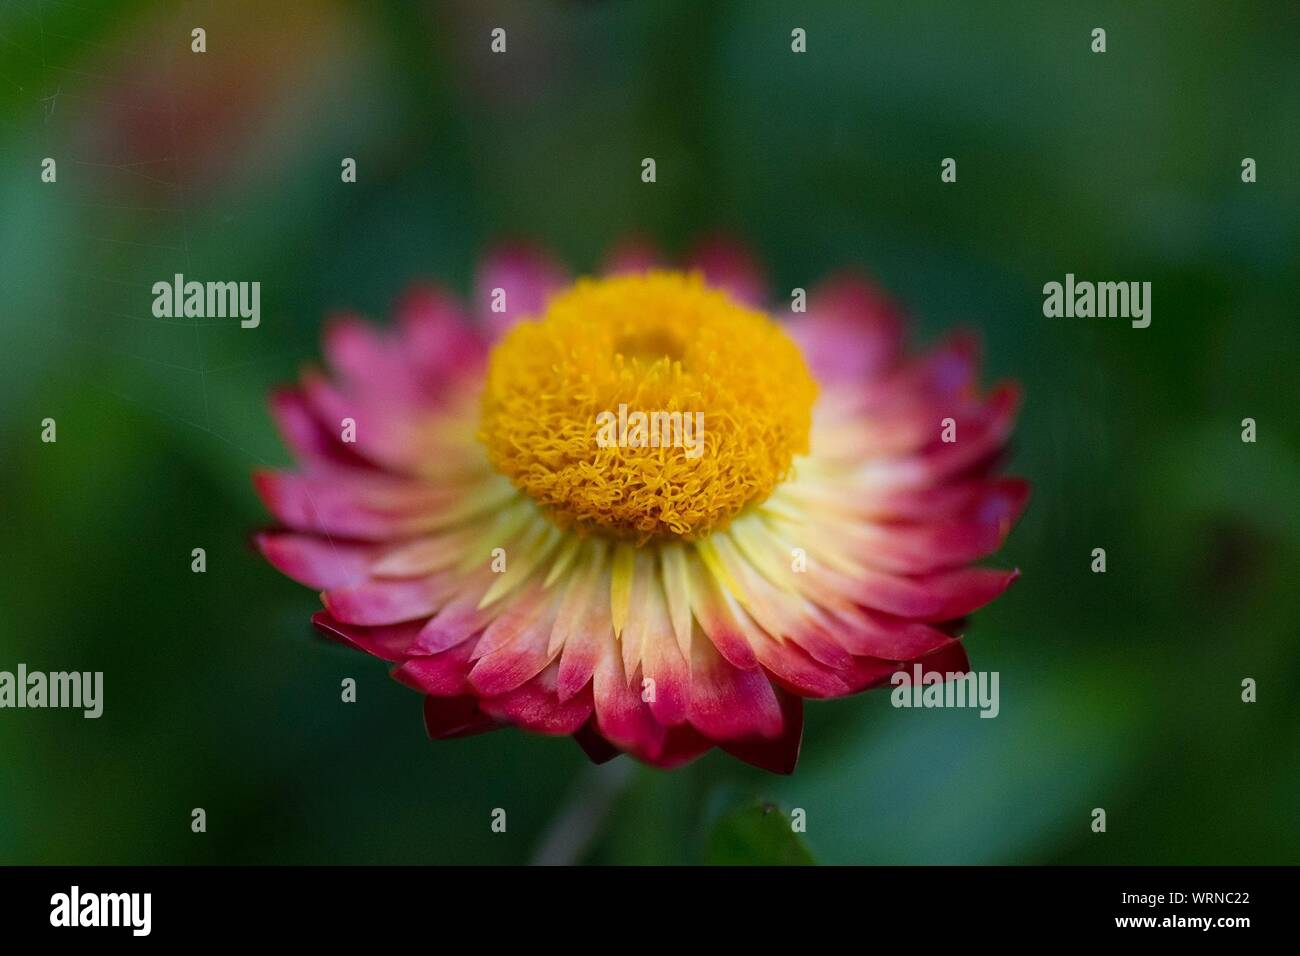 Close-up Of Bicolored Flower Stock Photo